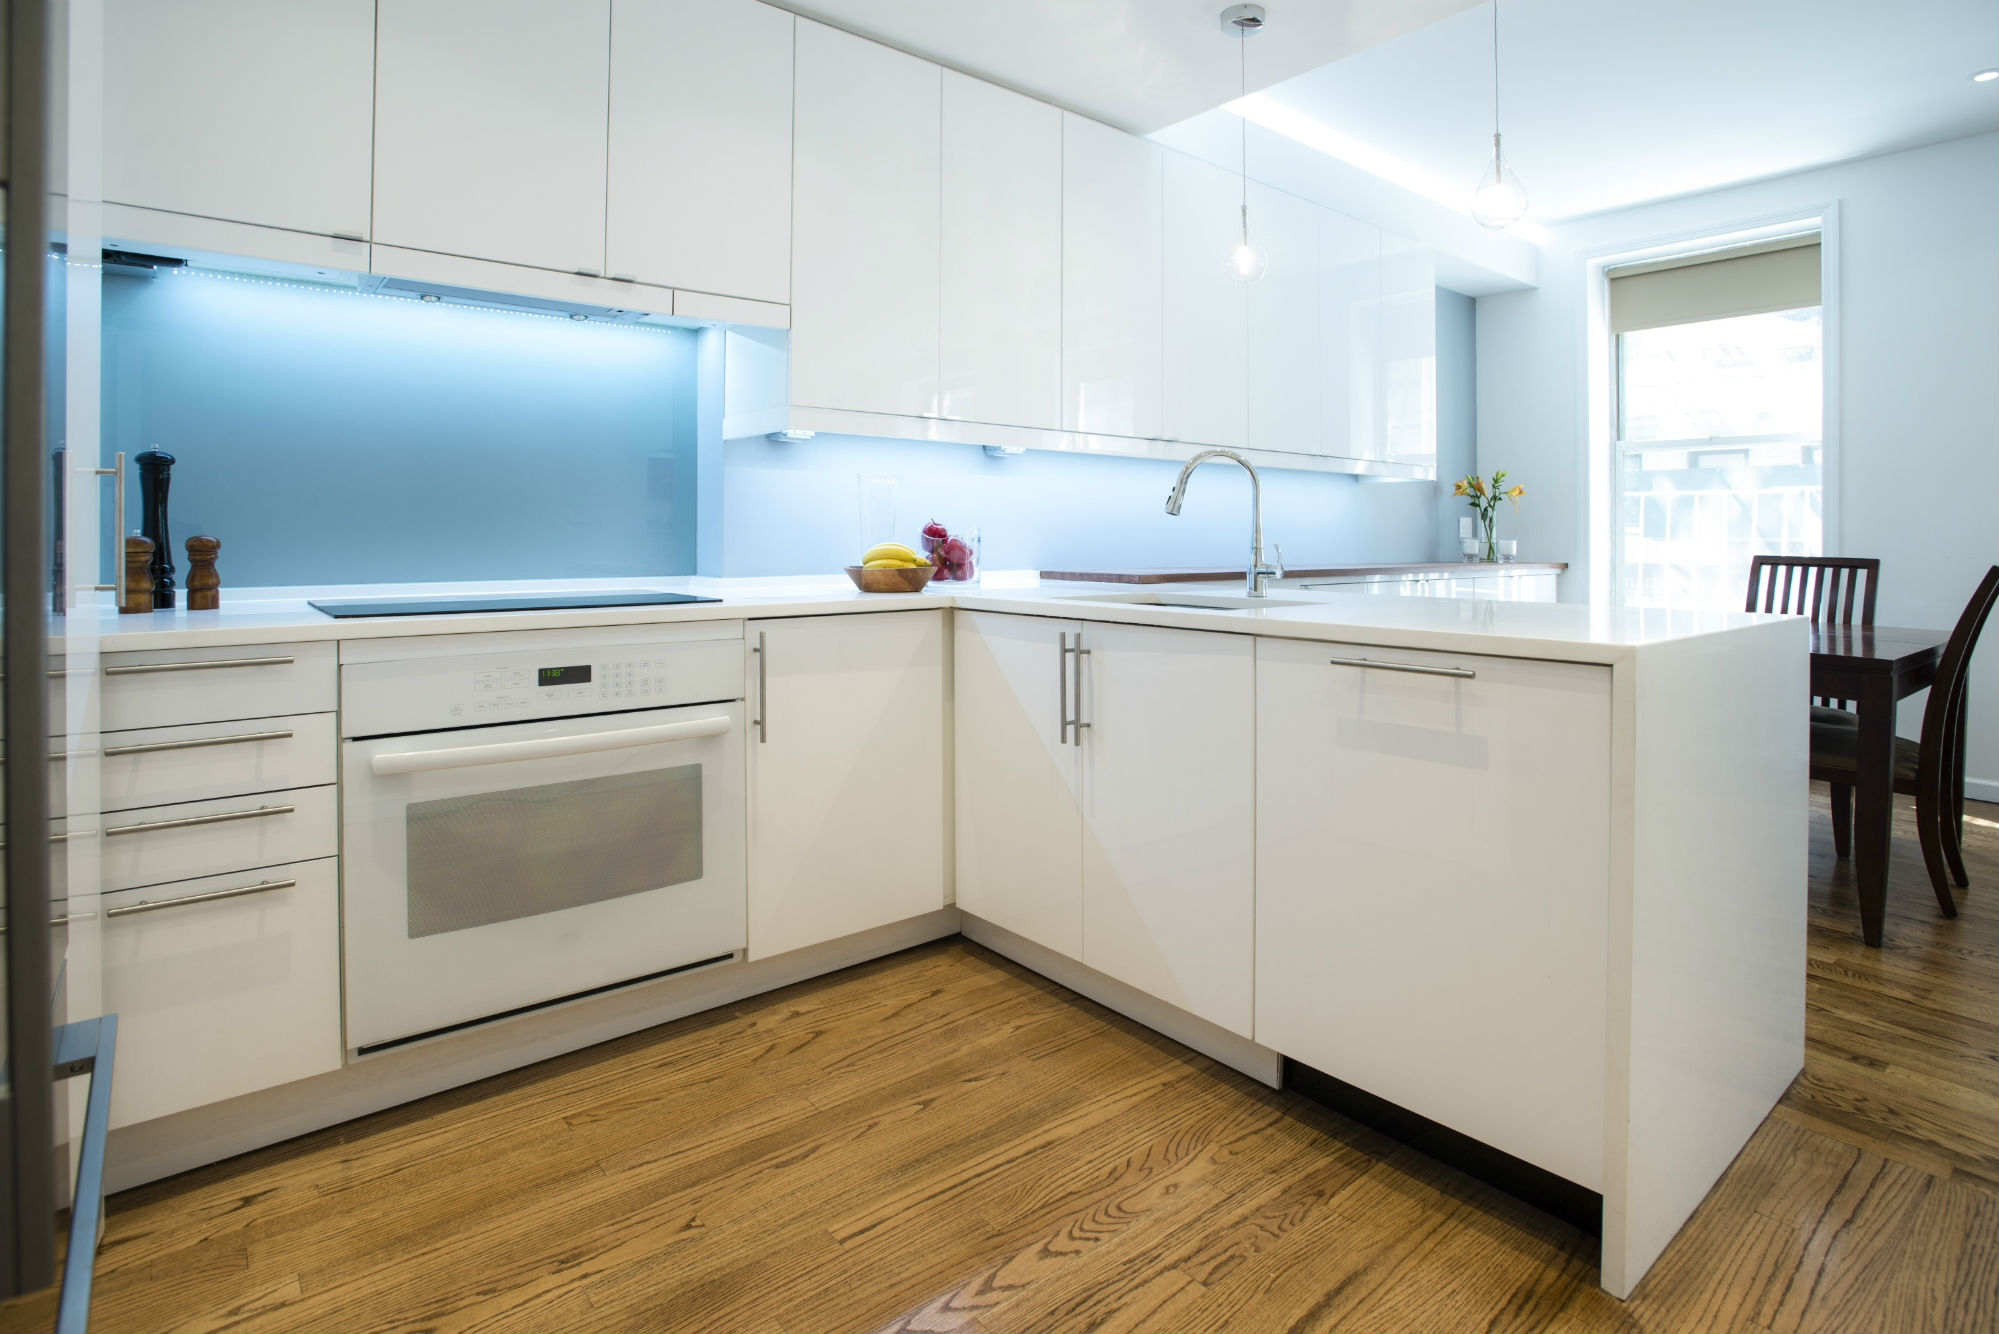 Gramercy Park Kitchen And Bath Remodel Puts Architect To